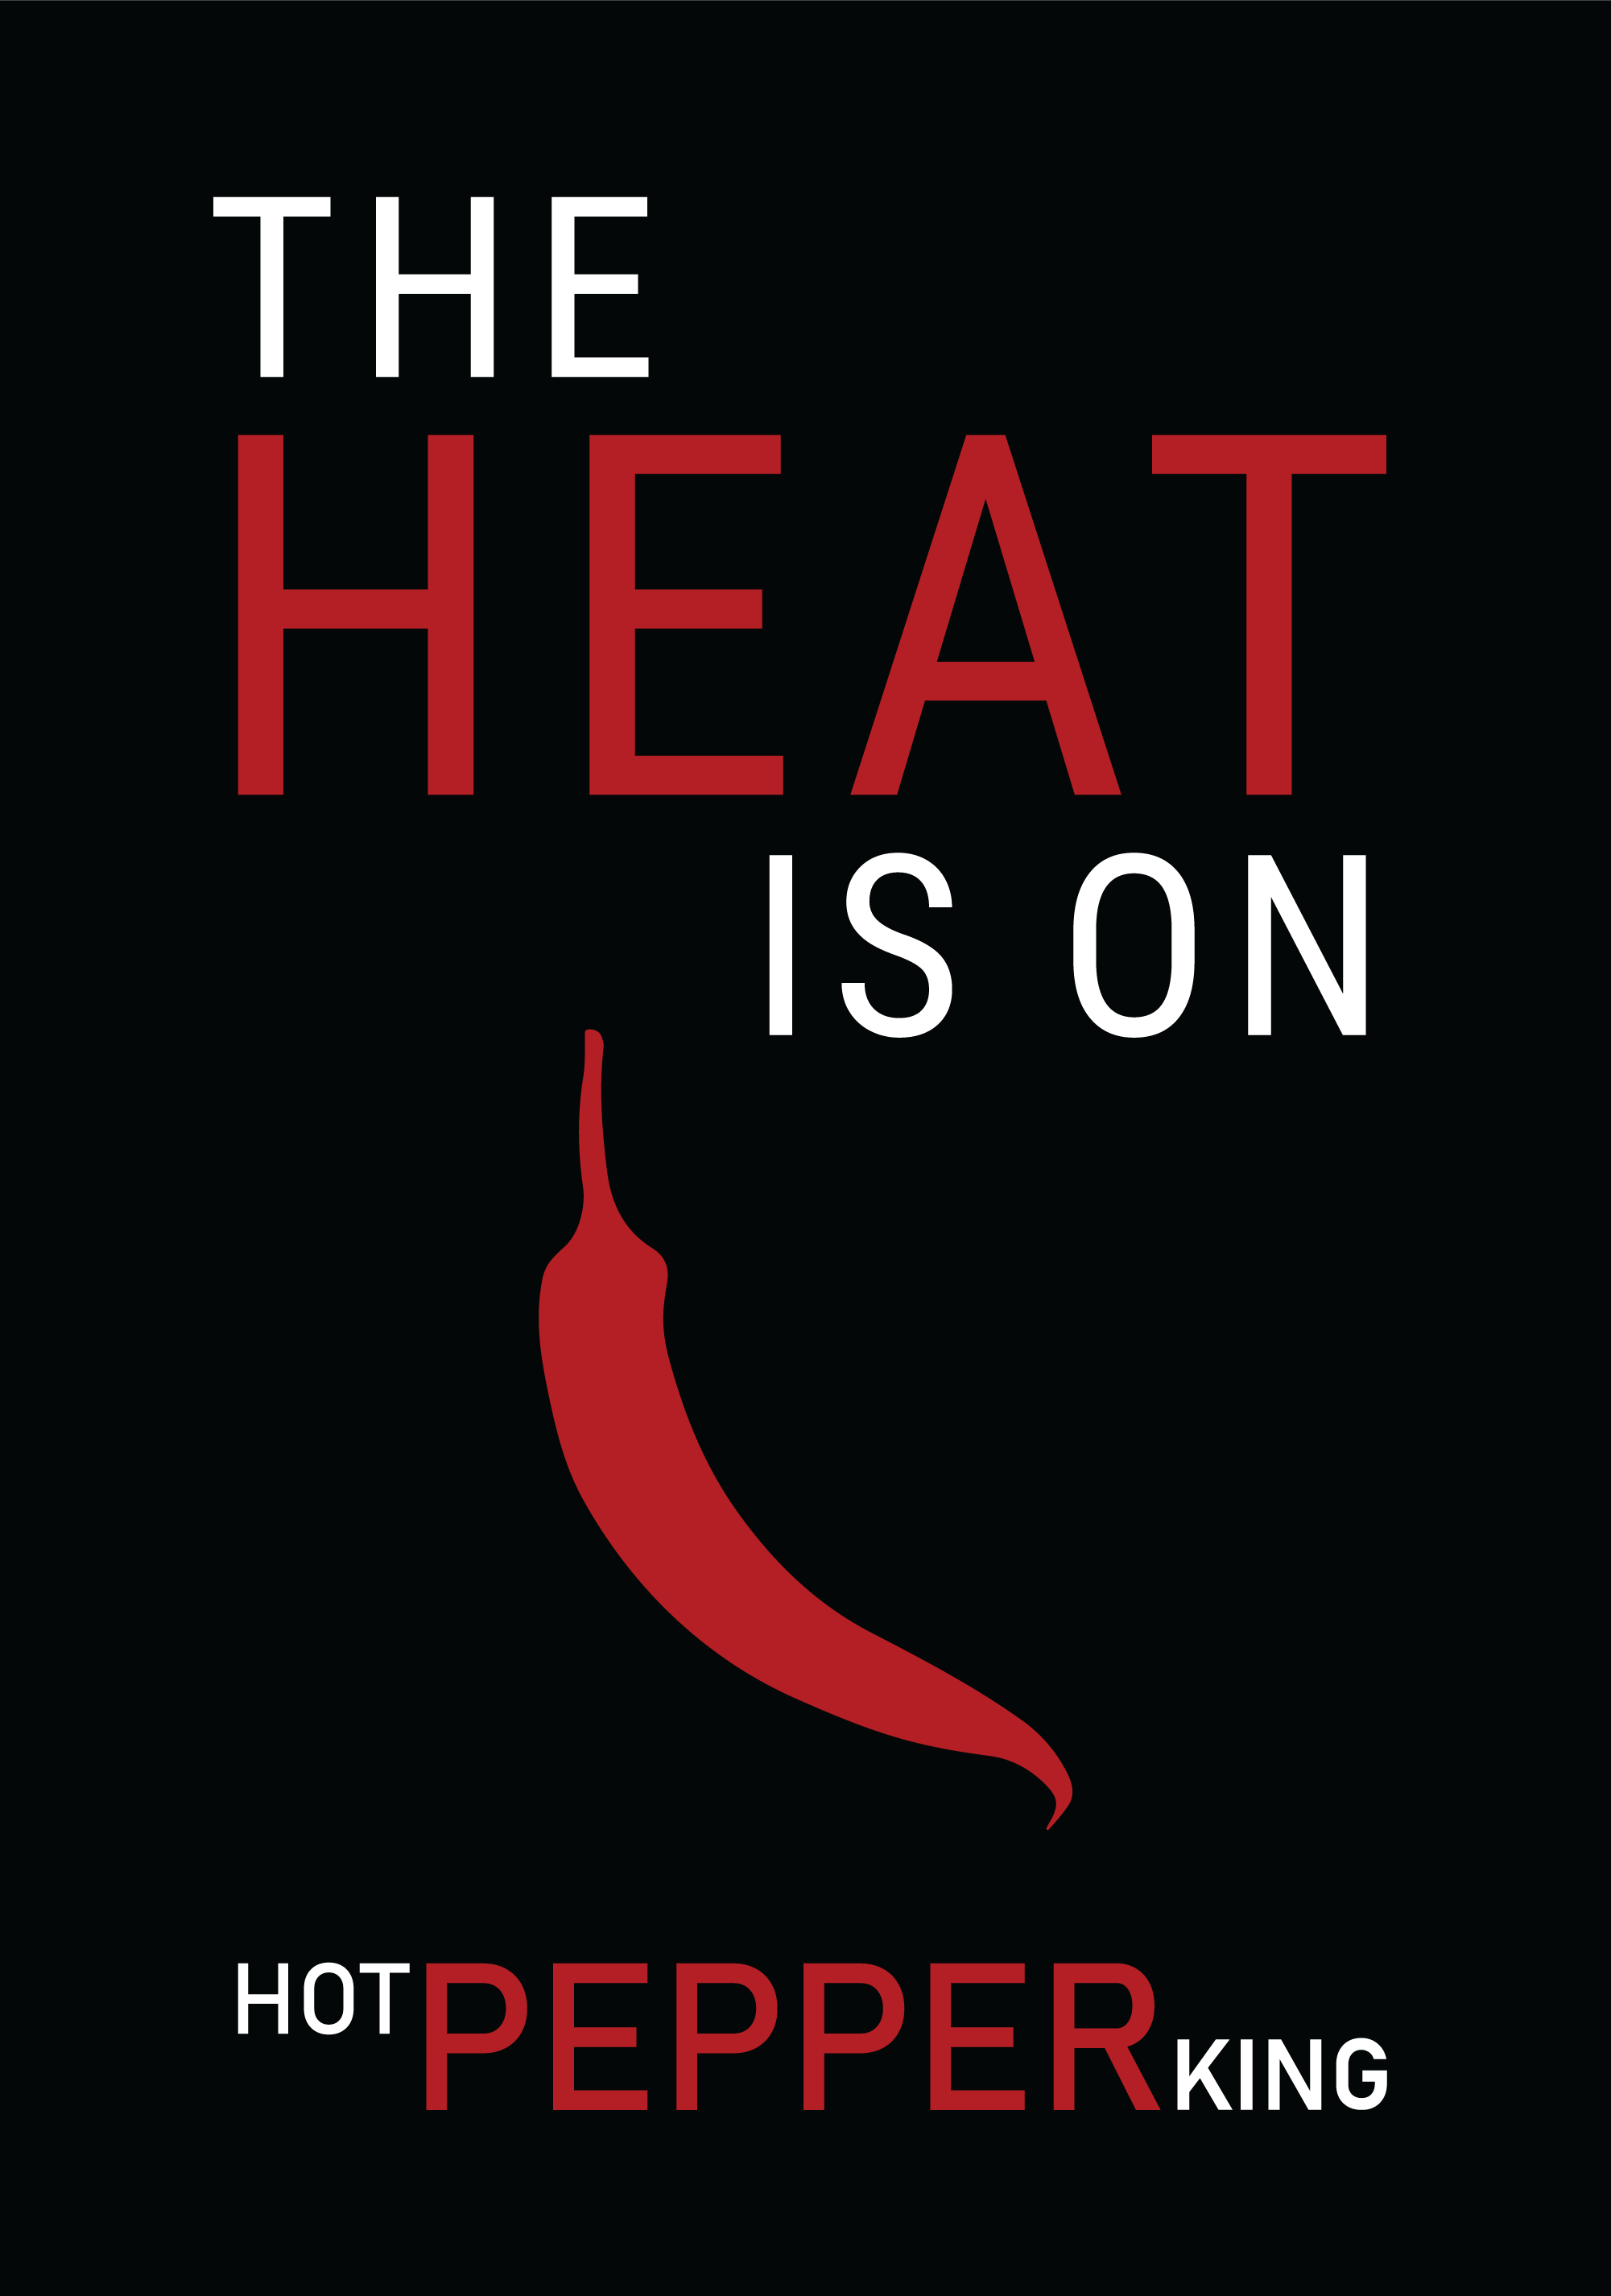 the-heat-is-on-outline.png